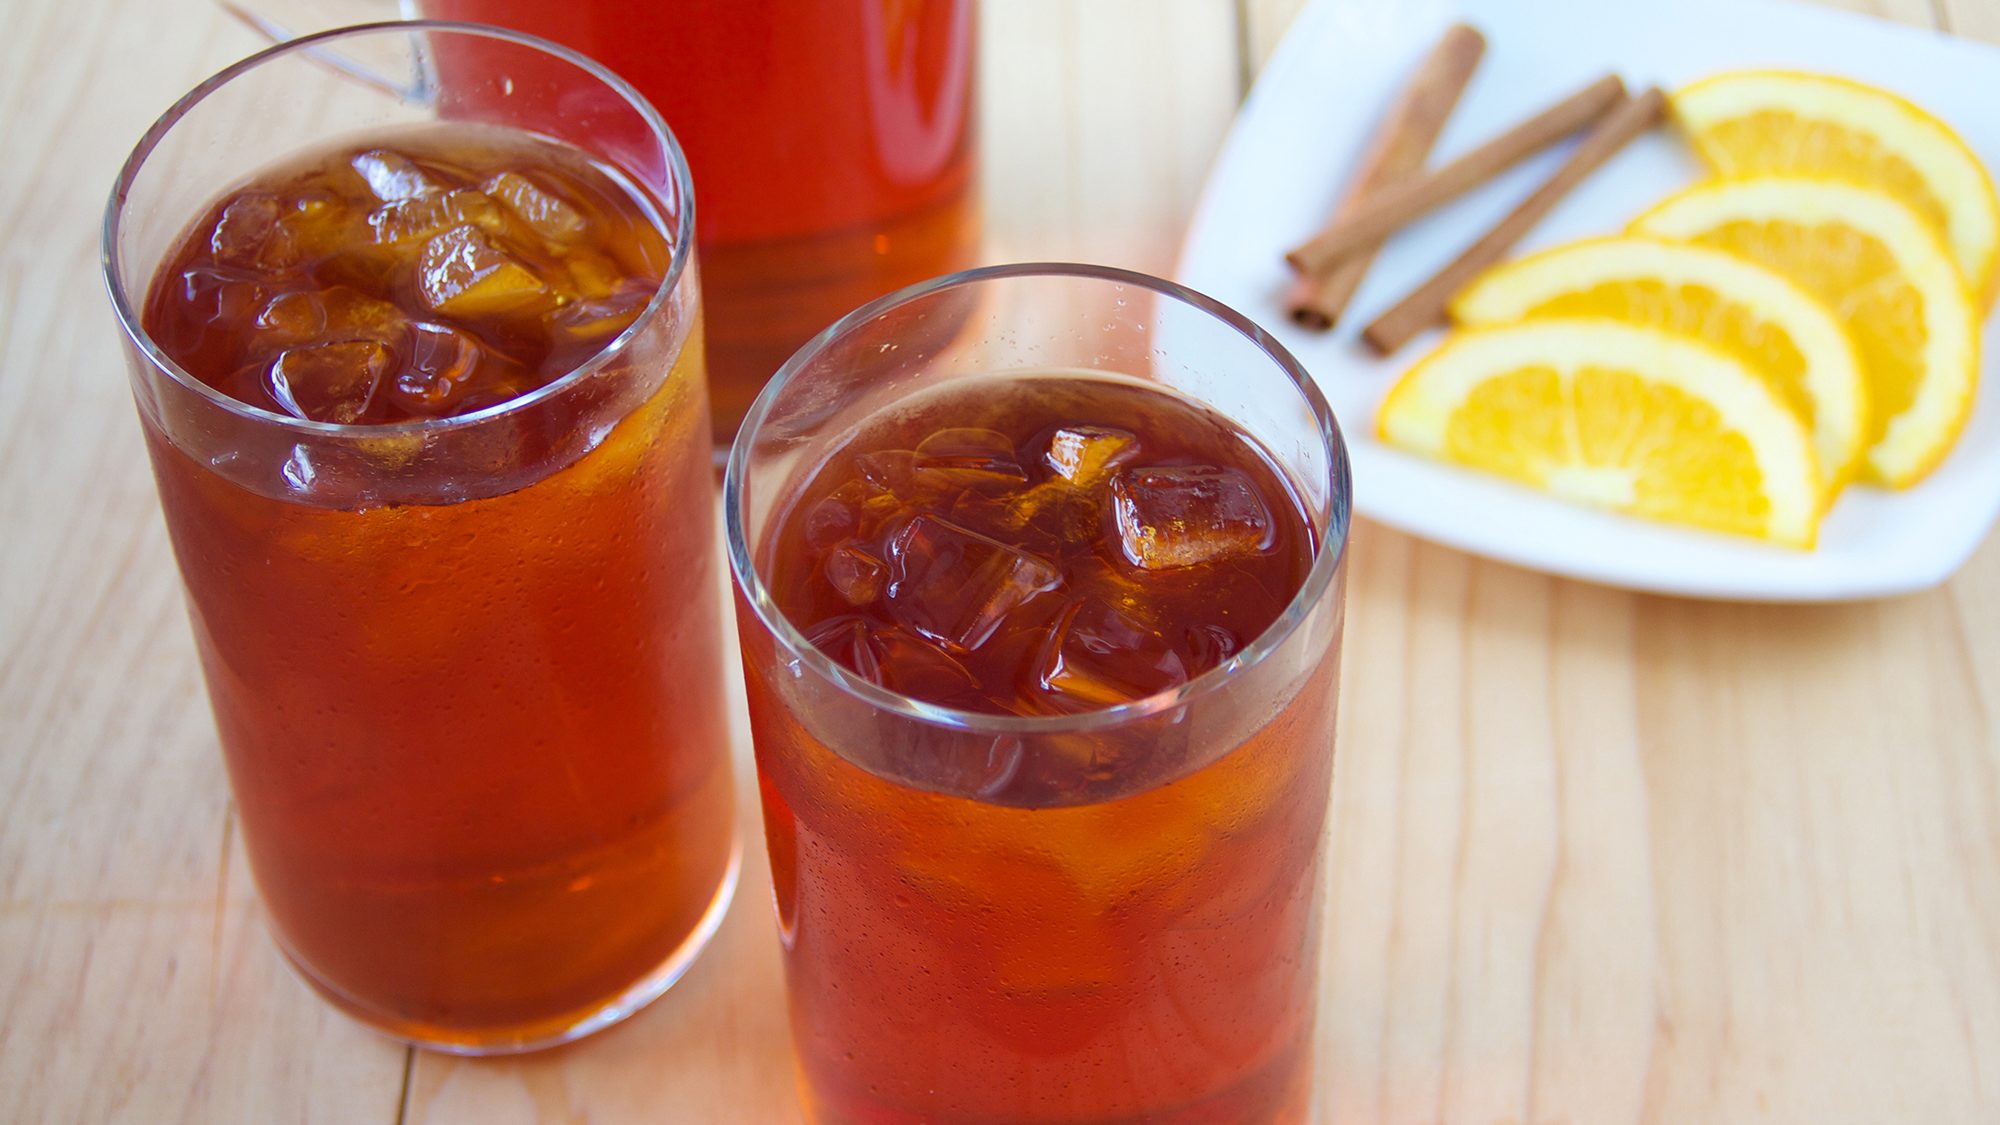 cinnamon-red-iced-tea.jpg